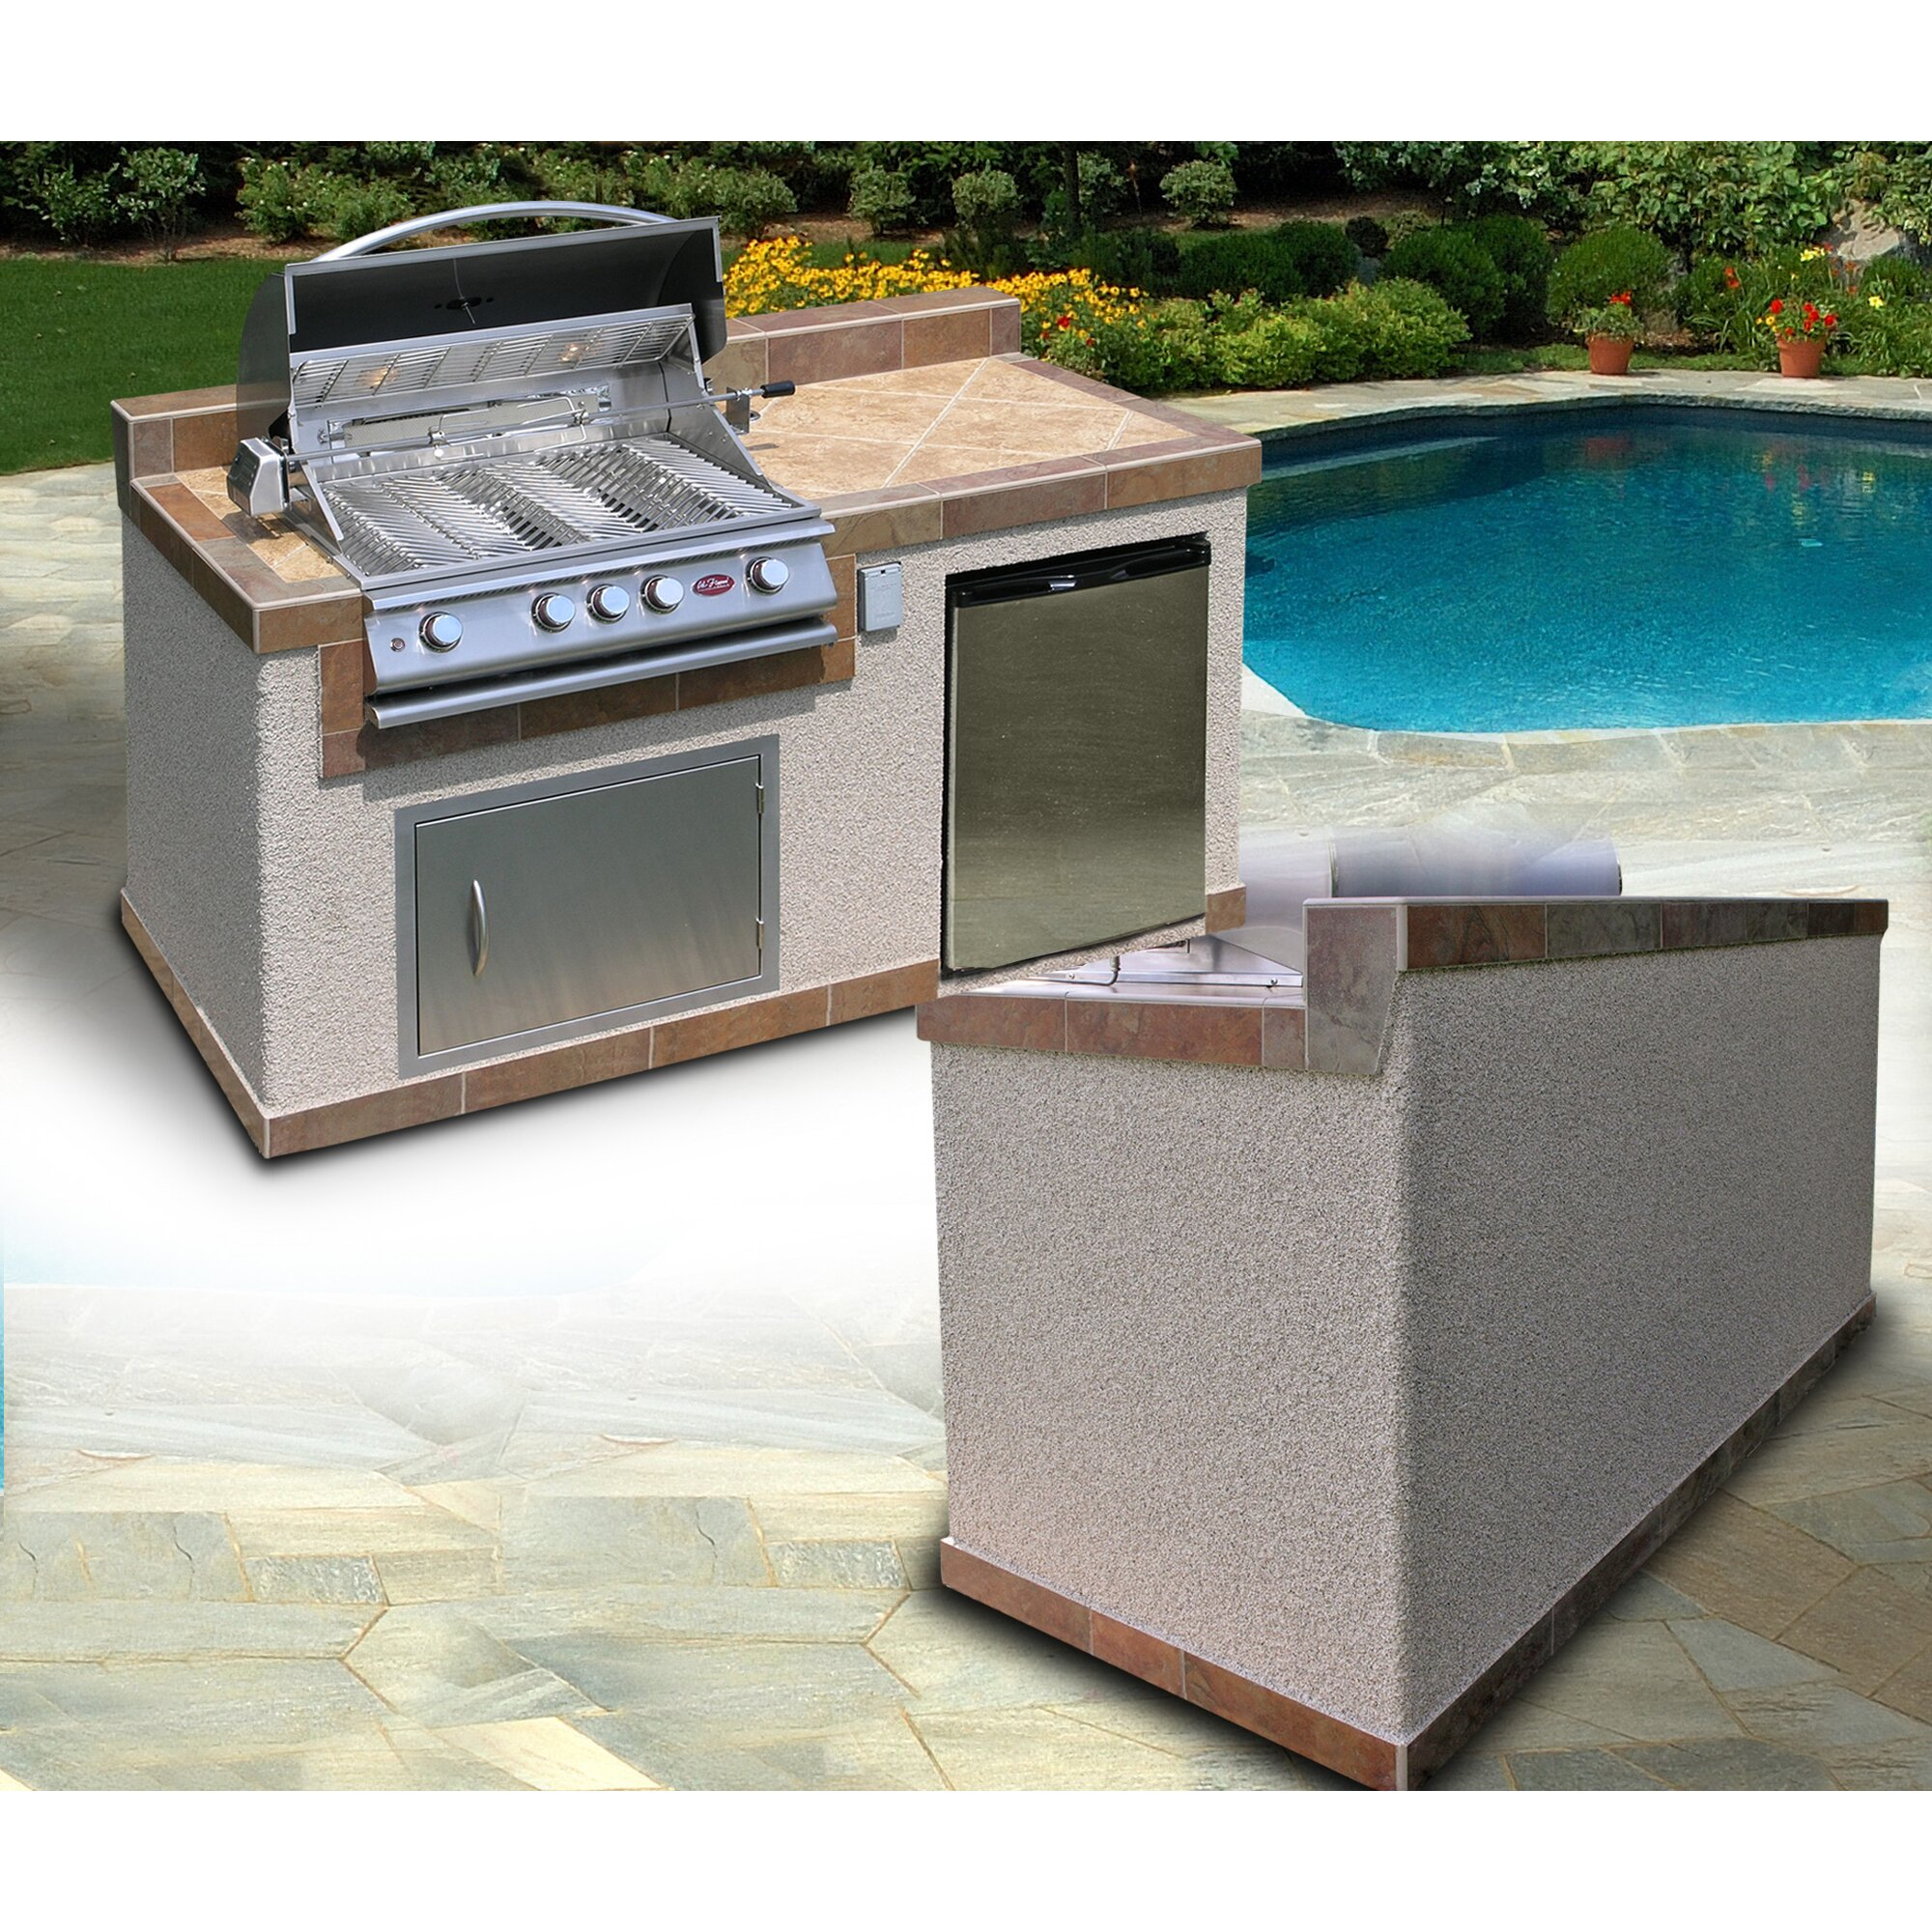 CalFlame 4-Burner Built-In Natural Gas Grill with Cabinet | Wayfair